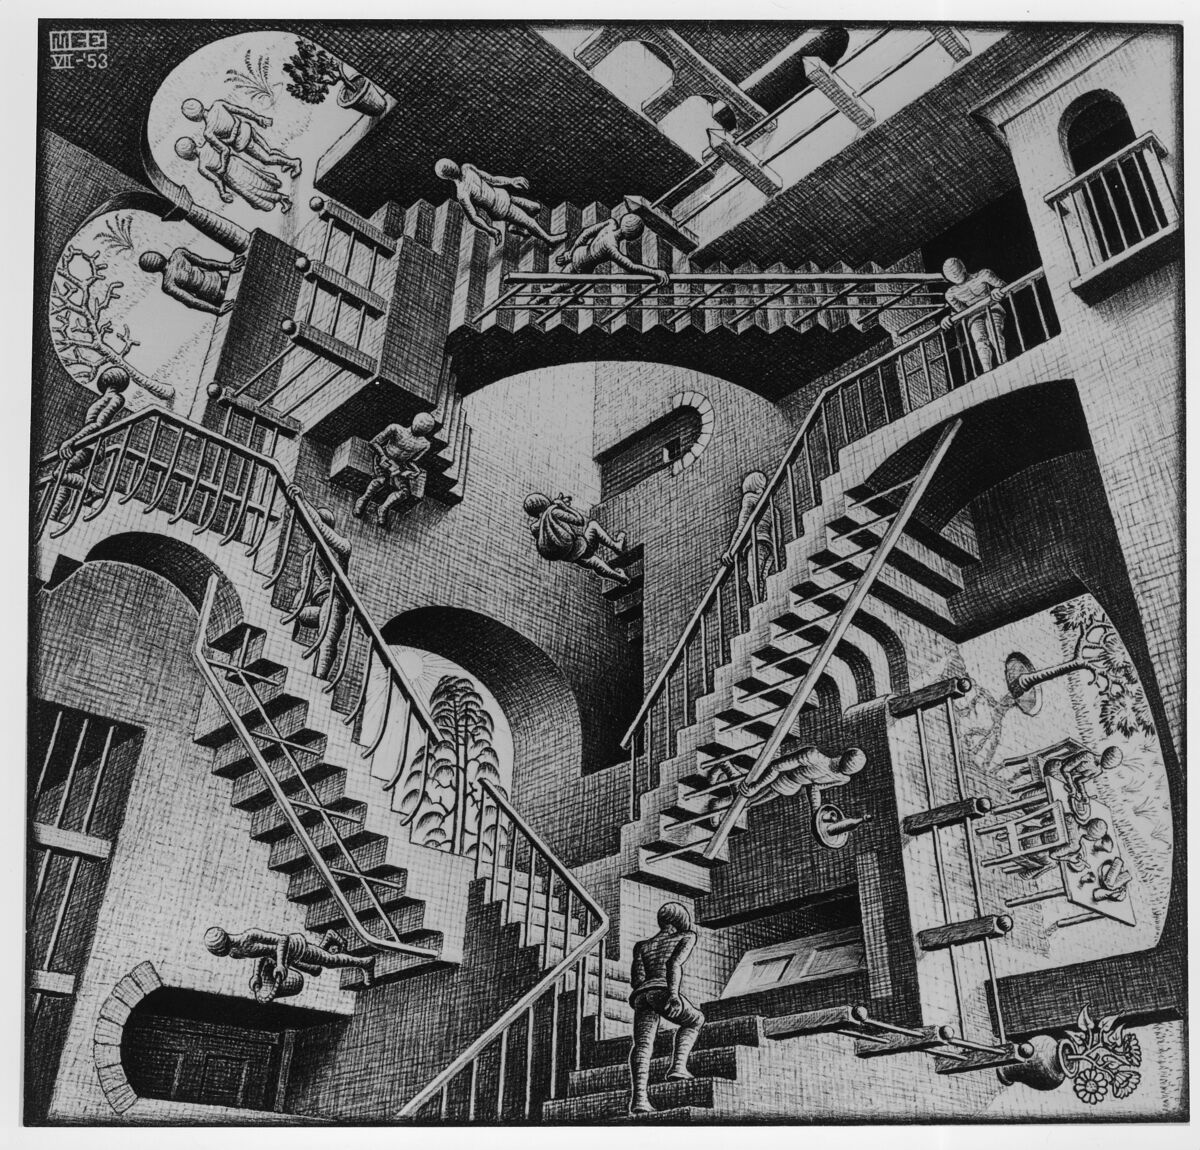 M.C. Escher, Relativity. ©2017 The M.C. Escher Company, The Netherlands.